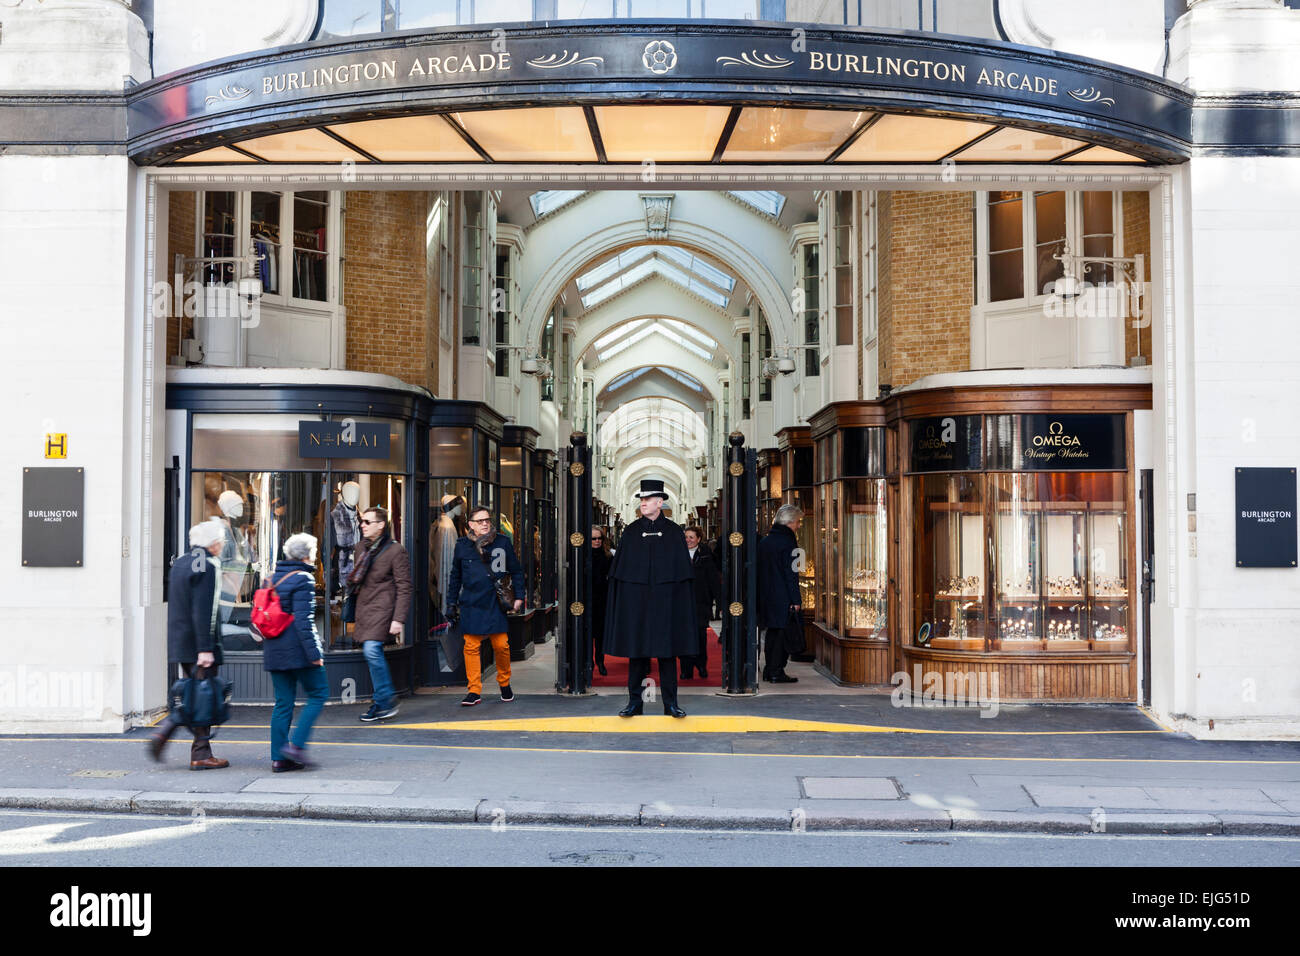 Burlington Arcade is a luxury shopping destination in the West End of London, England. - Stock Image